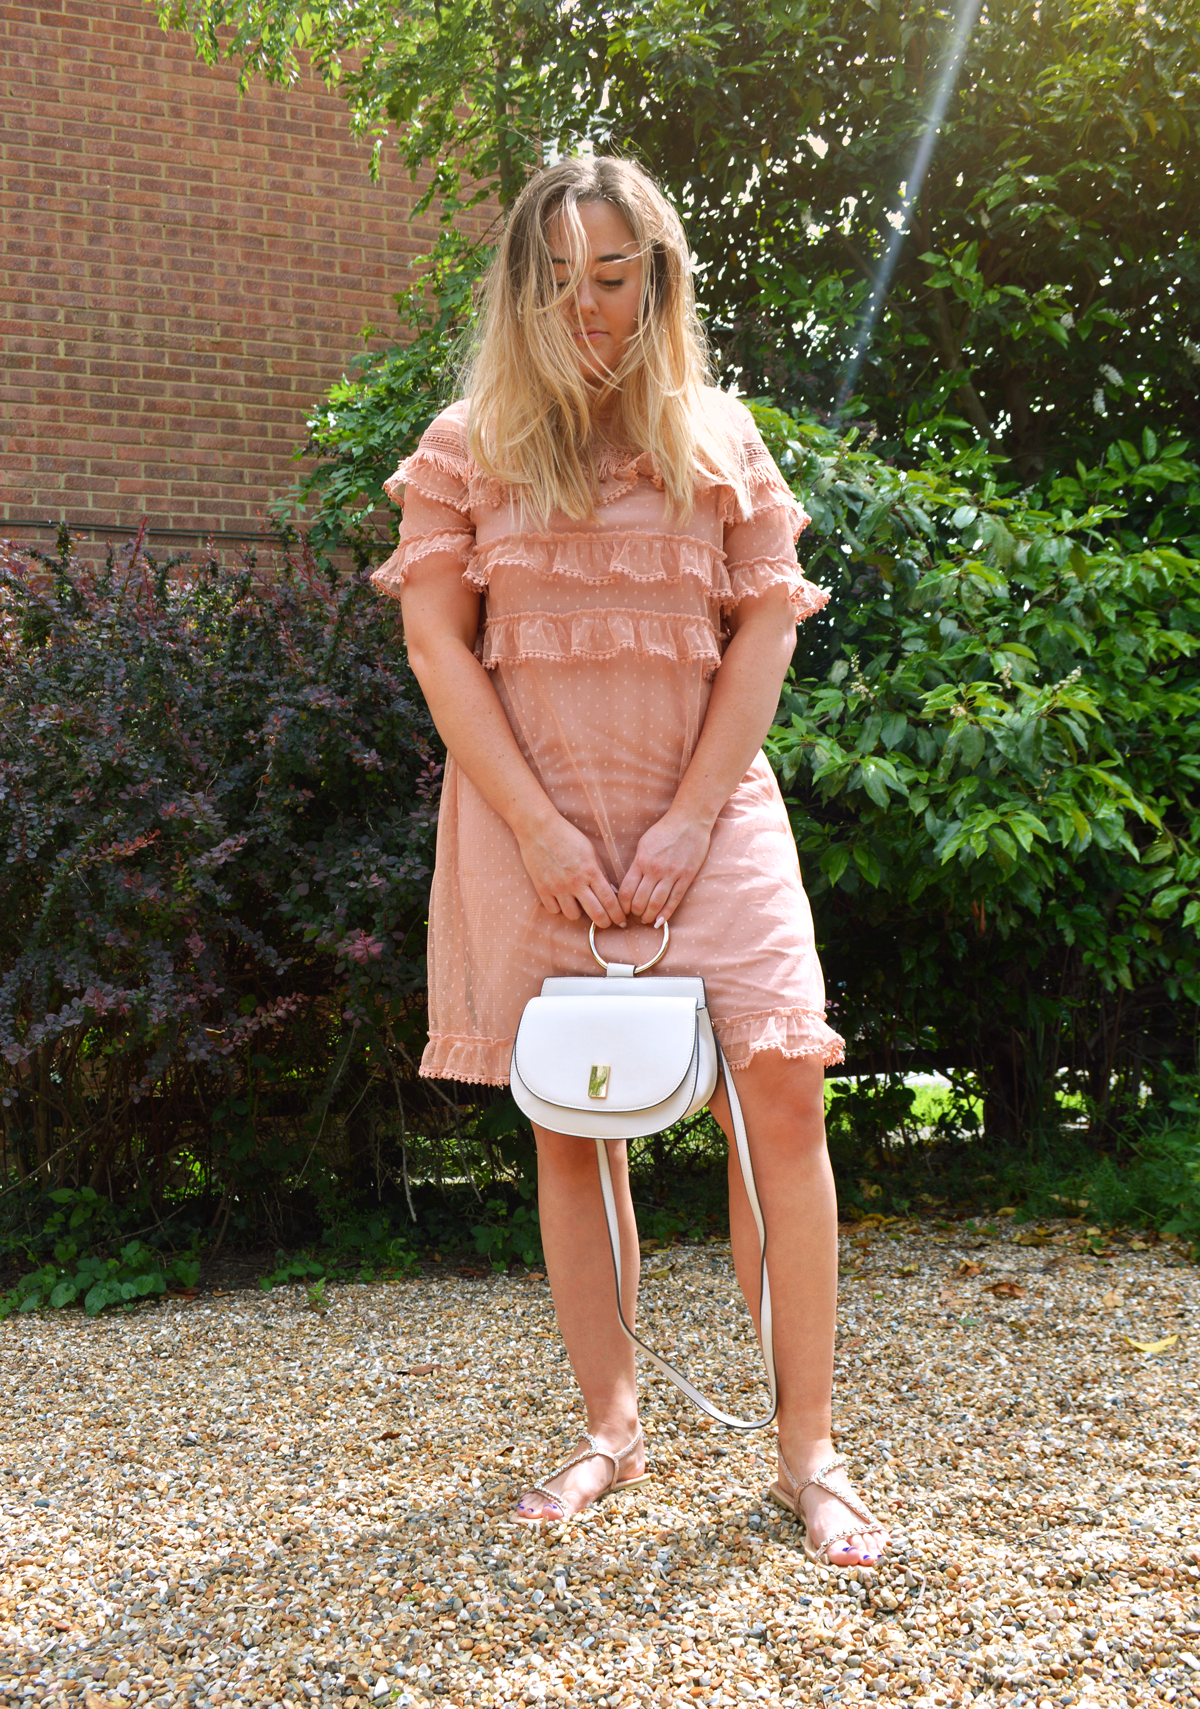 Hannah wearing Asos River Island blush pink dobby dress with tiered chiffon and lace, holding the Mango bag